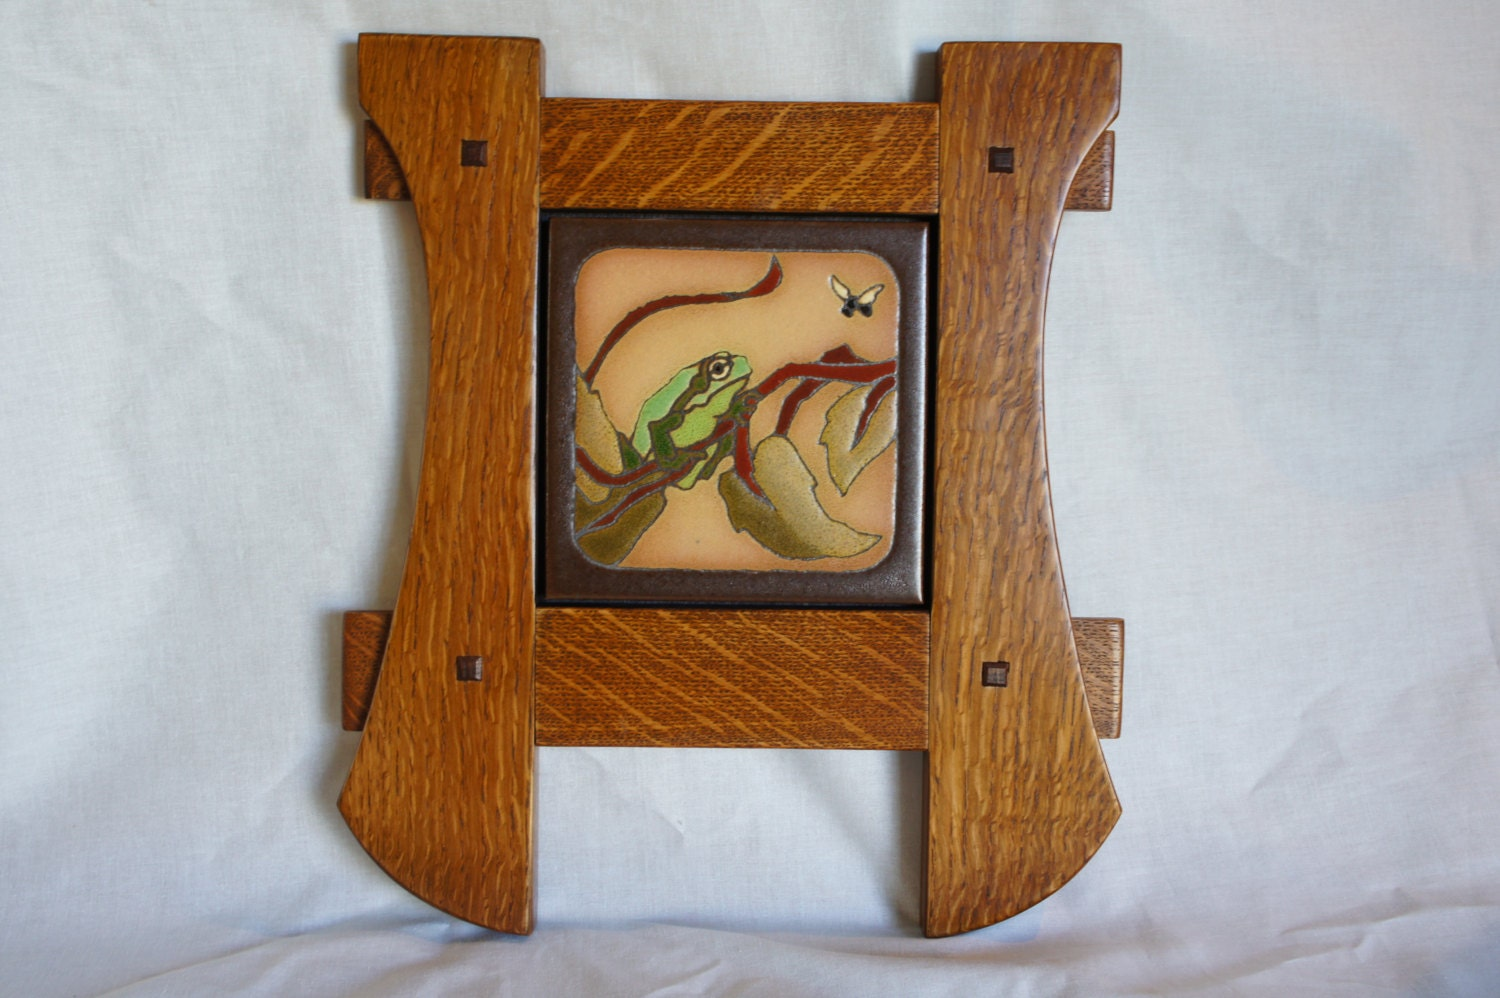 Arts crafts style art tile frog with a bee framed by for Arts crafts tiles